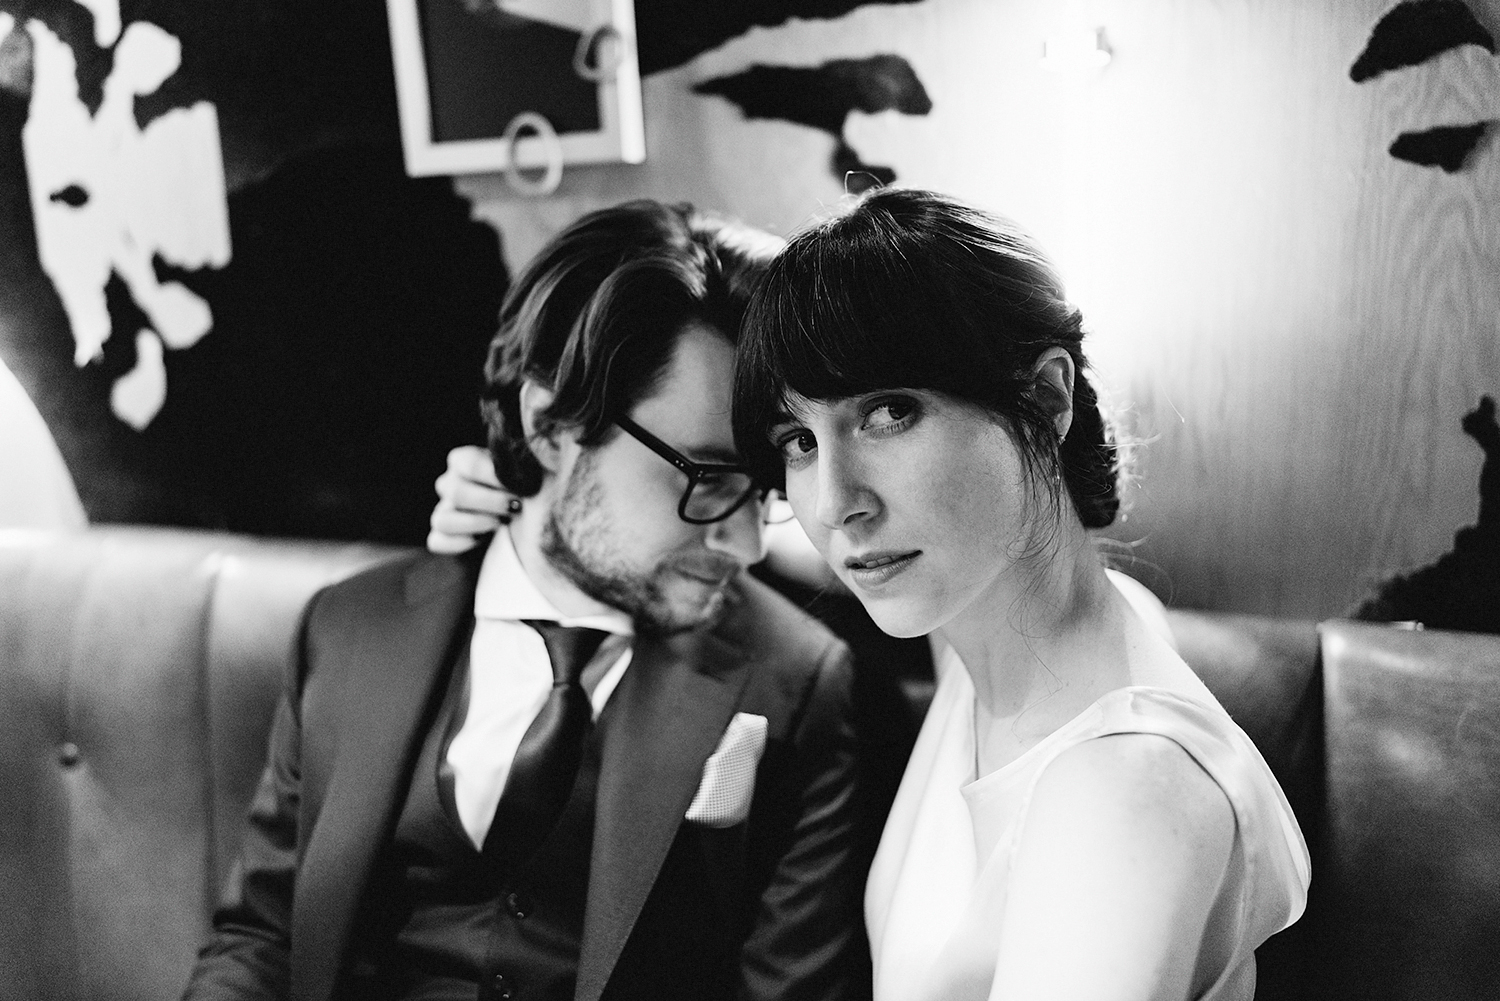 editorial-analog-film-cinematic-couples-portraits-at-the-drake-hotel-bar-bouquet-by-coriander-girl-moody-romantic-intimate-inspiration-Toronto-Elopement-at-the-Drake-Hotel-pop-up-Torontos-Best-wedding-photographers-elopement-inspiration.jpg